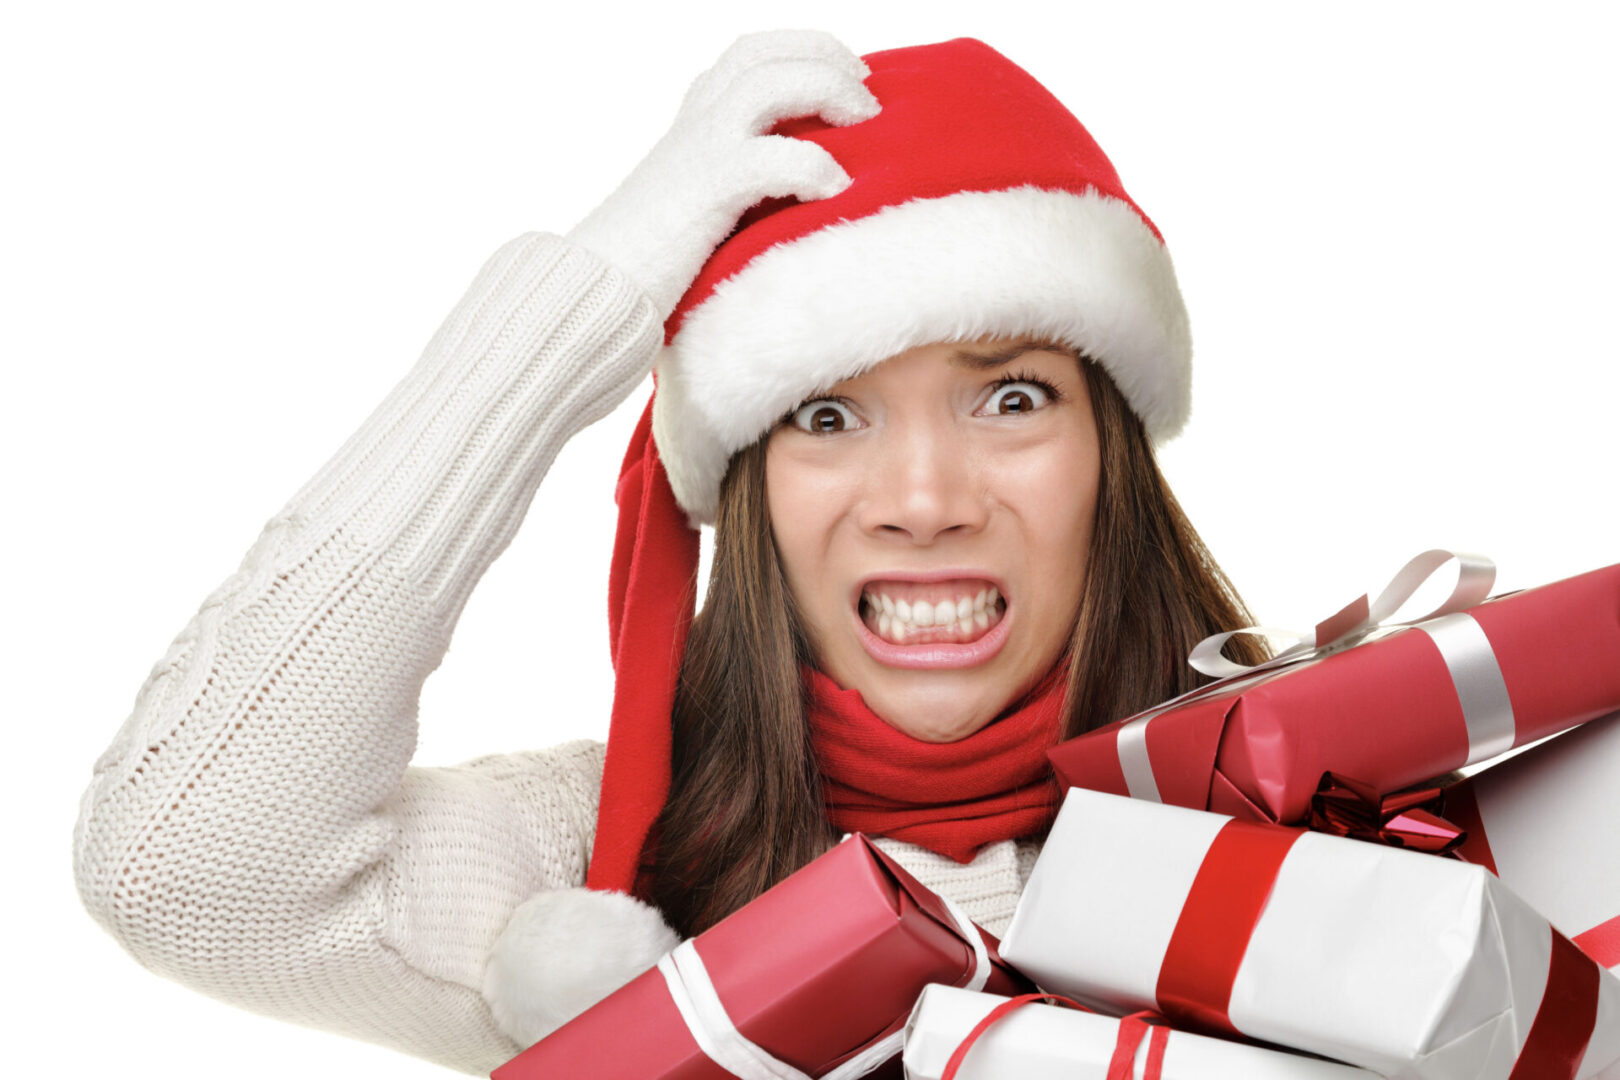 Woman grabbing santa hat grimacing with lots of presents in her hand